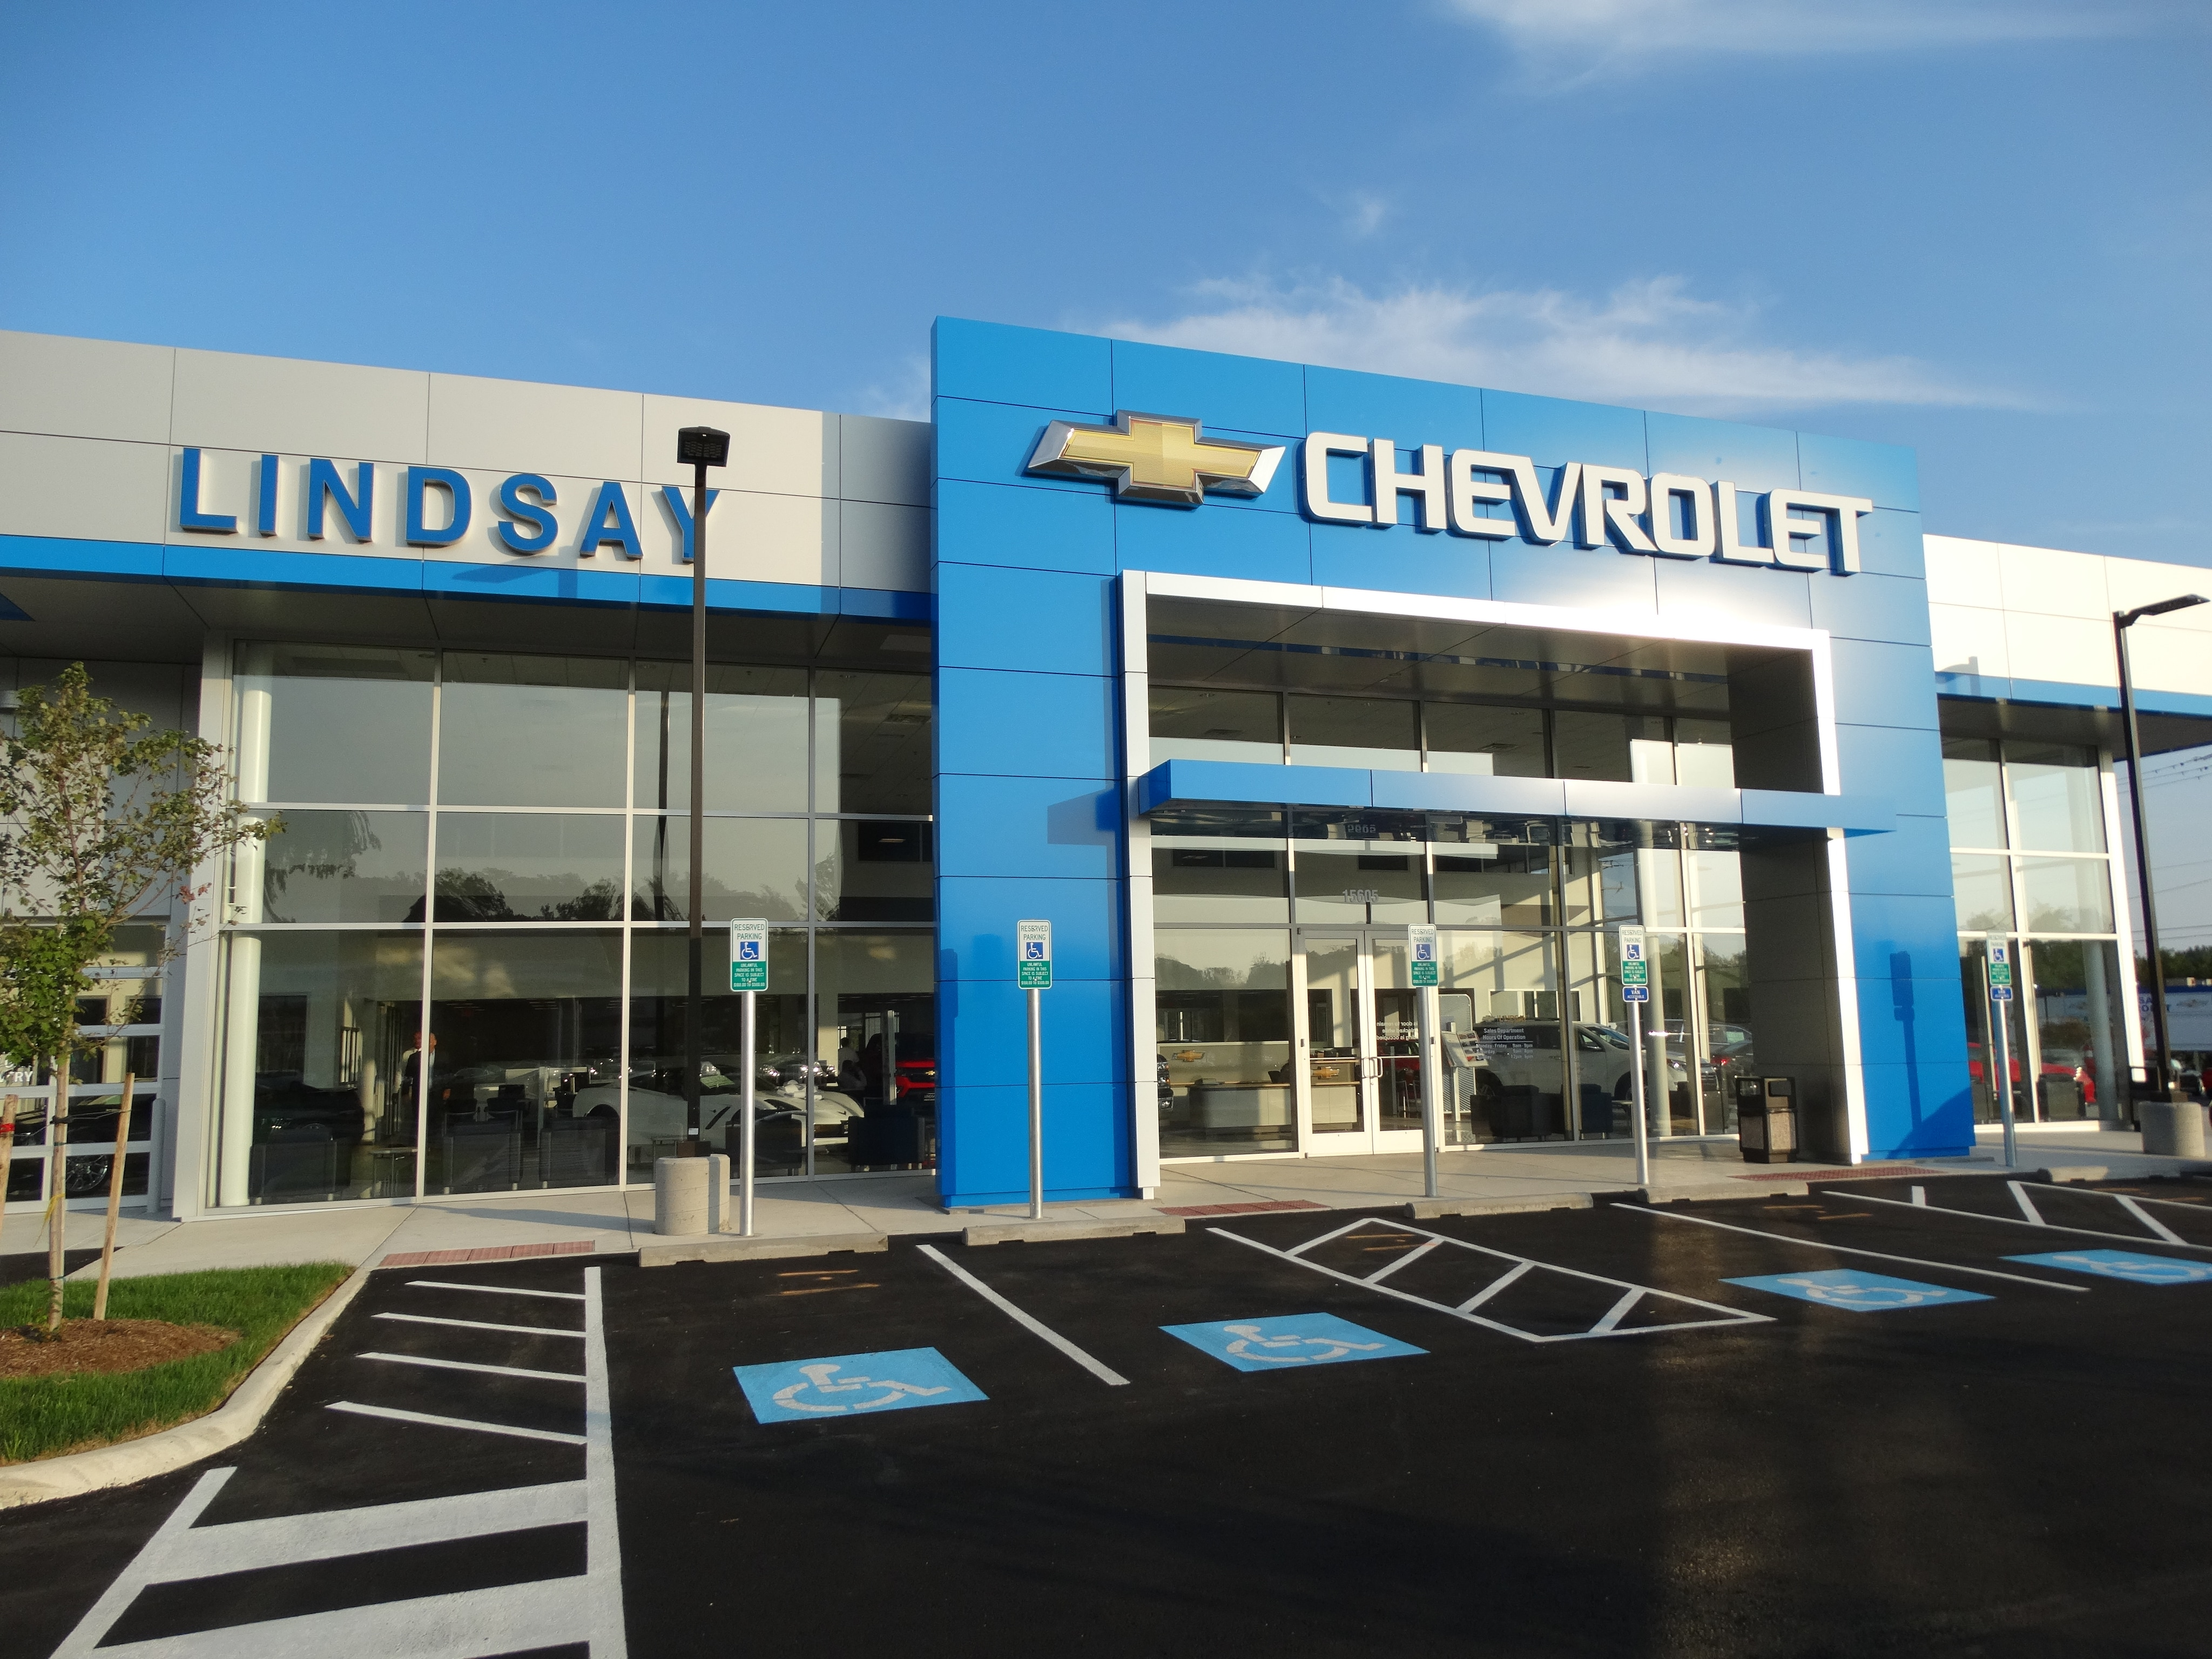 lindsay chevrolet new chevrolet dealership in woodbridge